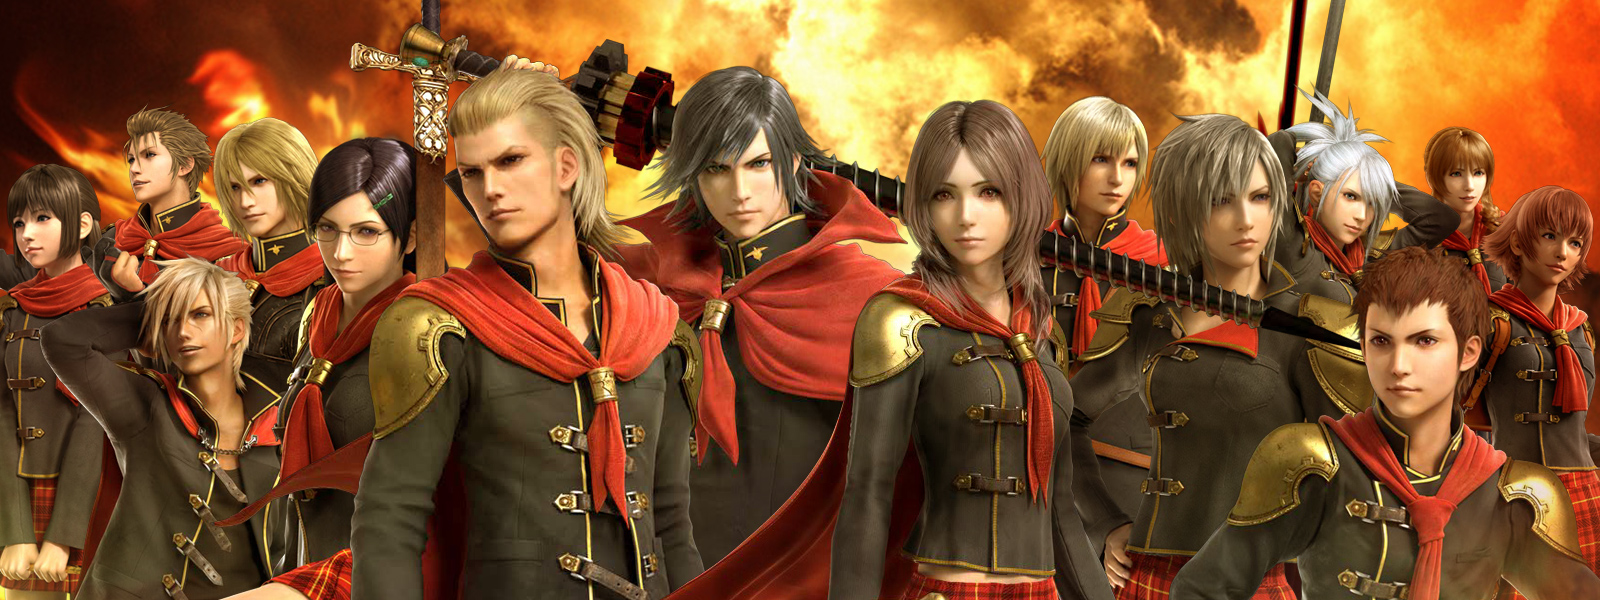 Image currently unavailable. Go to www.generator.fewhack.com and choose Final Fantasy Awakening image, you will be redirect to Final Fantasy Awakening Generator site.